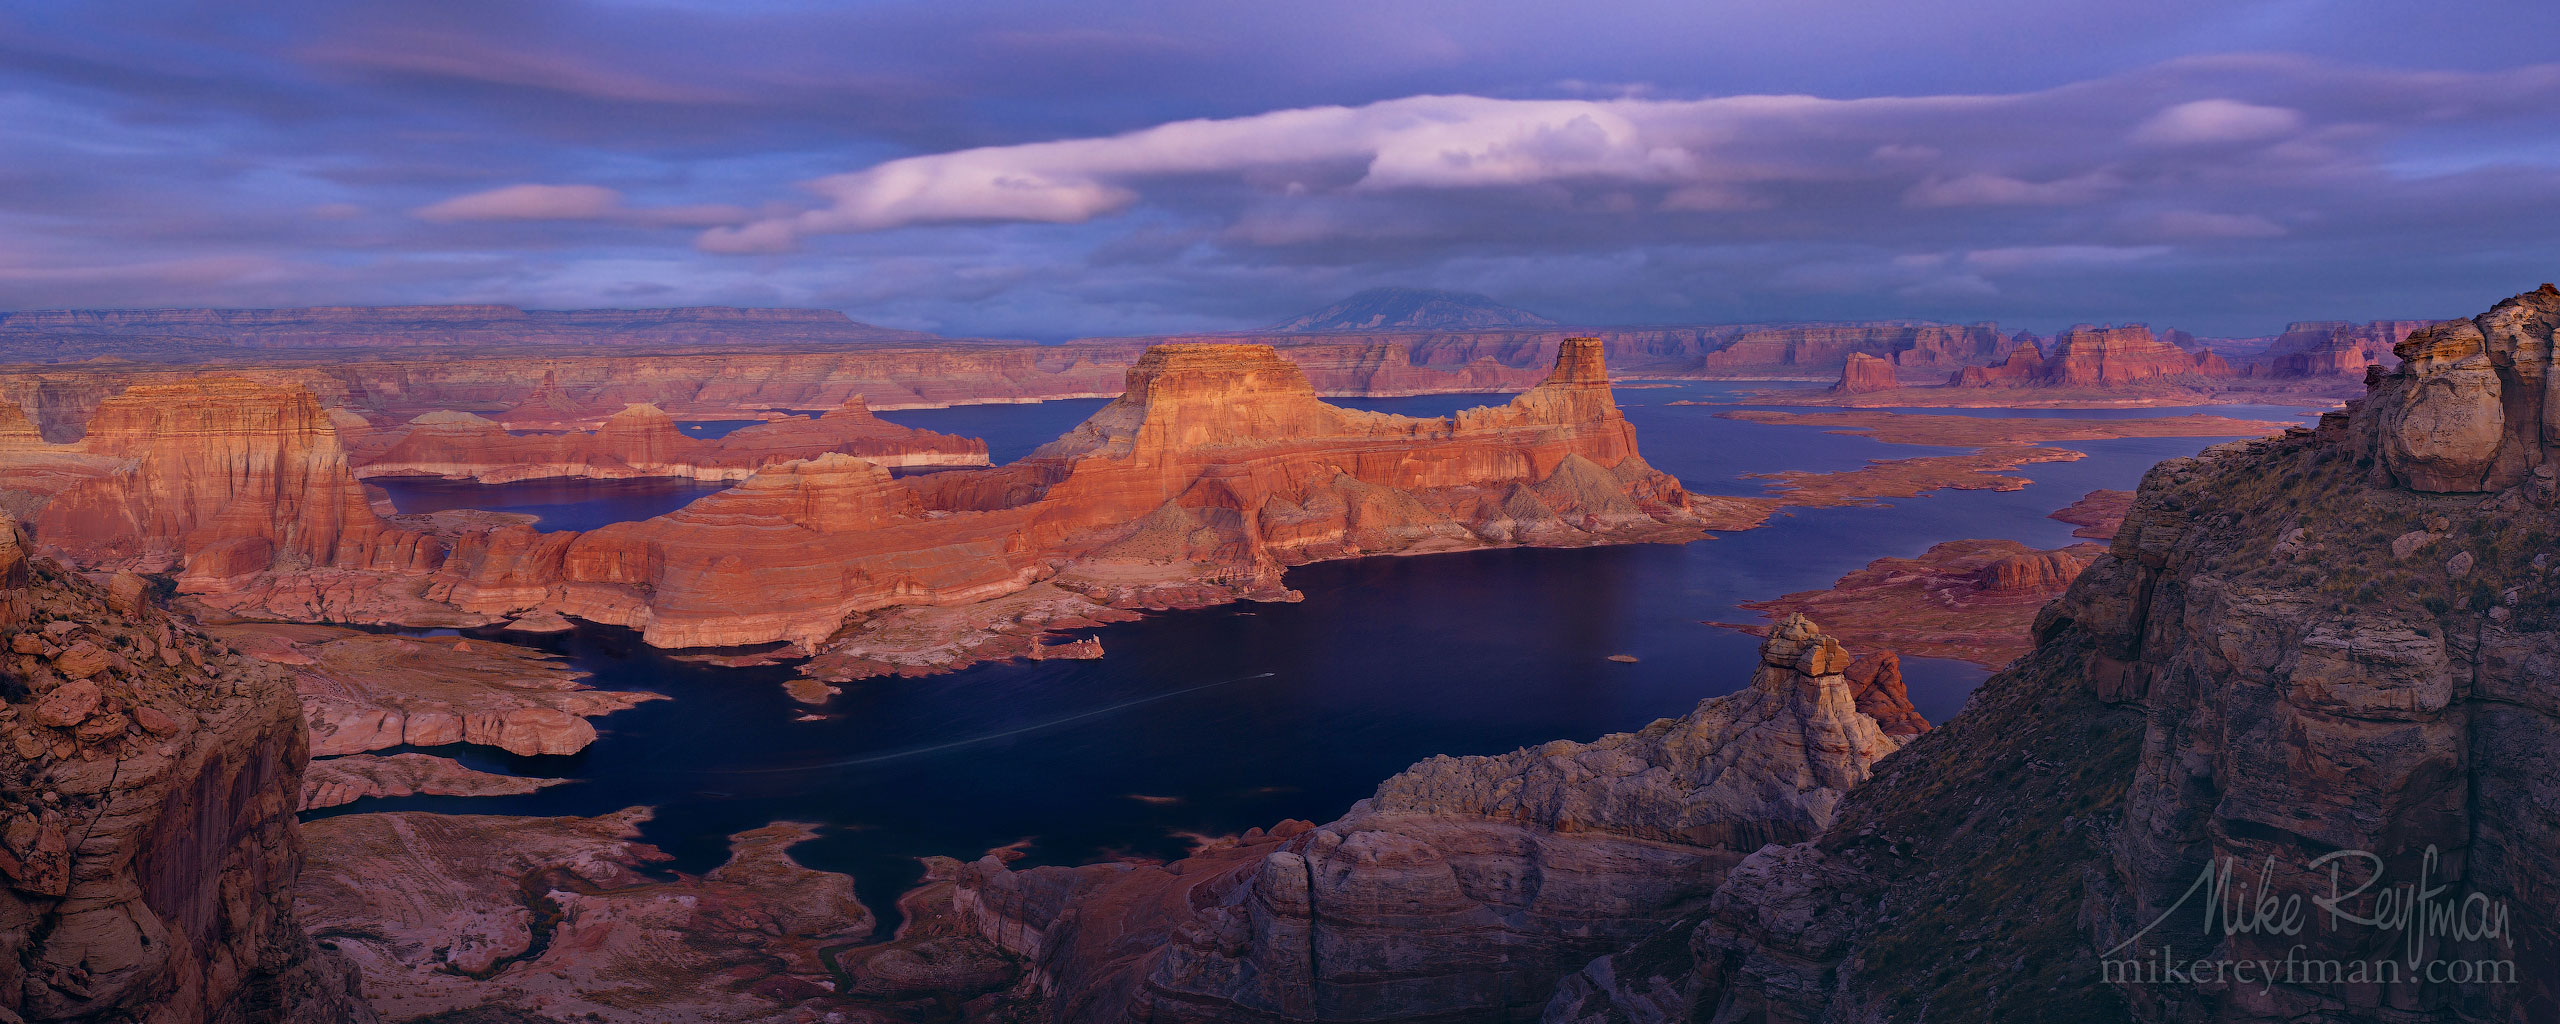 Romana Mesa, Alstrom Point. Gunsight Butte in Padre Bay. Lake Powell, Glen Canyon NRA, Uta/Arizona, USA. 018-LP3_Alstrom-Point_Pano_1x2.5.jpg - Lake Powell, Glen Canyon NAR. Colorado and Sun Juan Rivers. Utah/Arizona, USA  - Mike Reyfman Photography